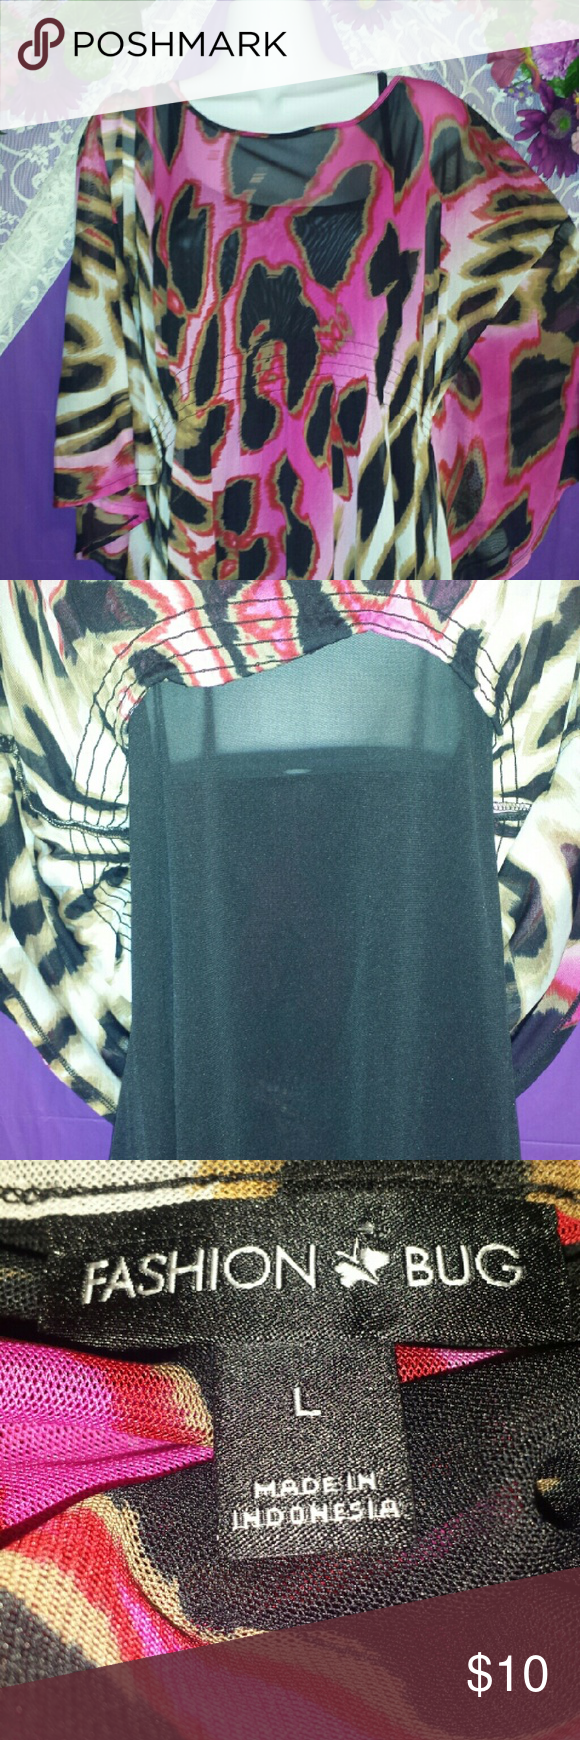 FB STUNNING SHEER LEOPARD Comes with attached black Cami (Picture 2). Flawless. Falls at hipline. Stretchy fabric.  Batwing  quarter length sleeves. Flawless. LIKE NEW Fashion Bug Tops Tunics